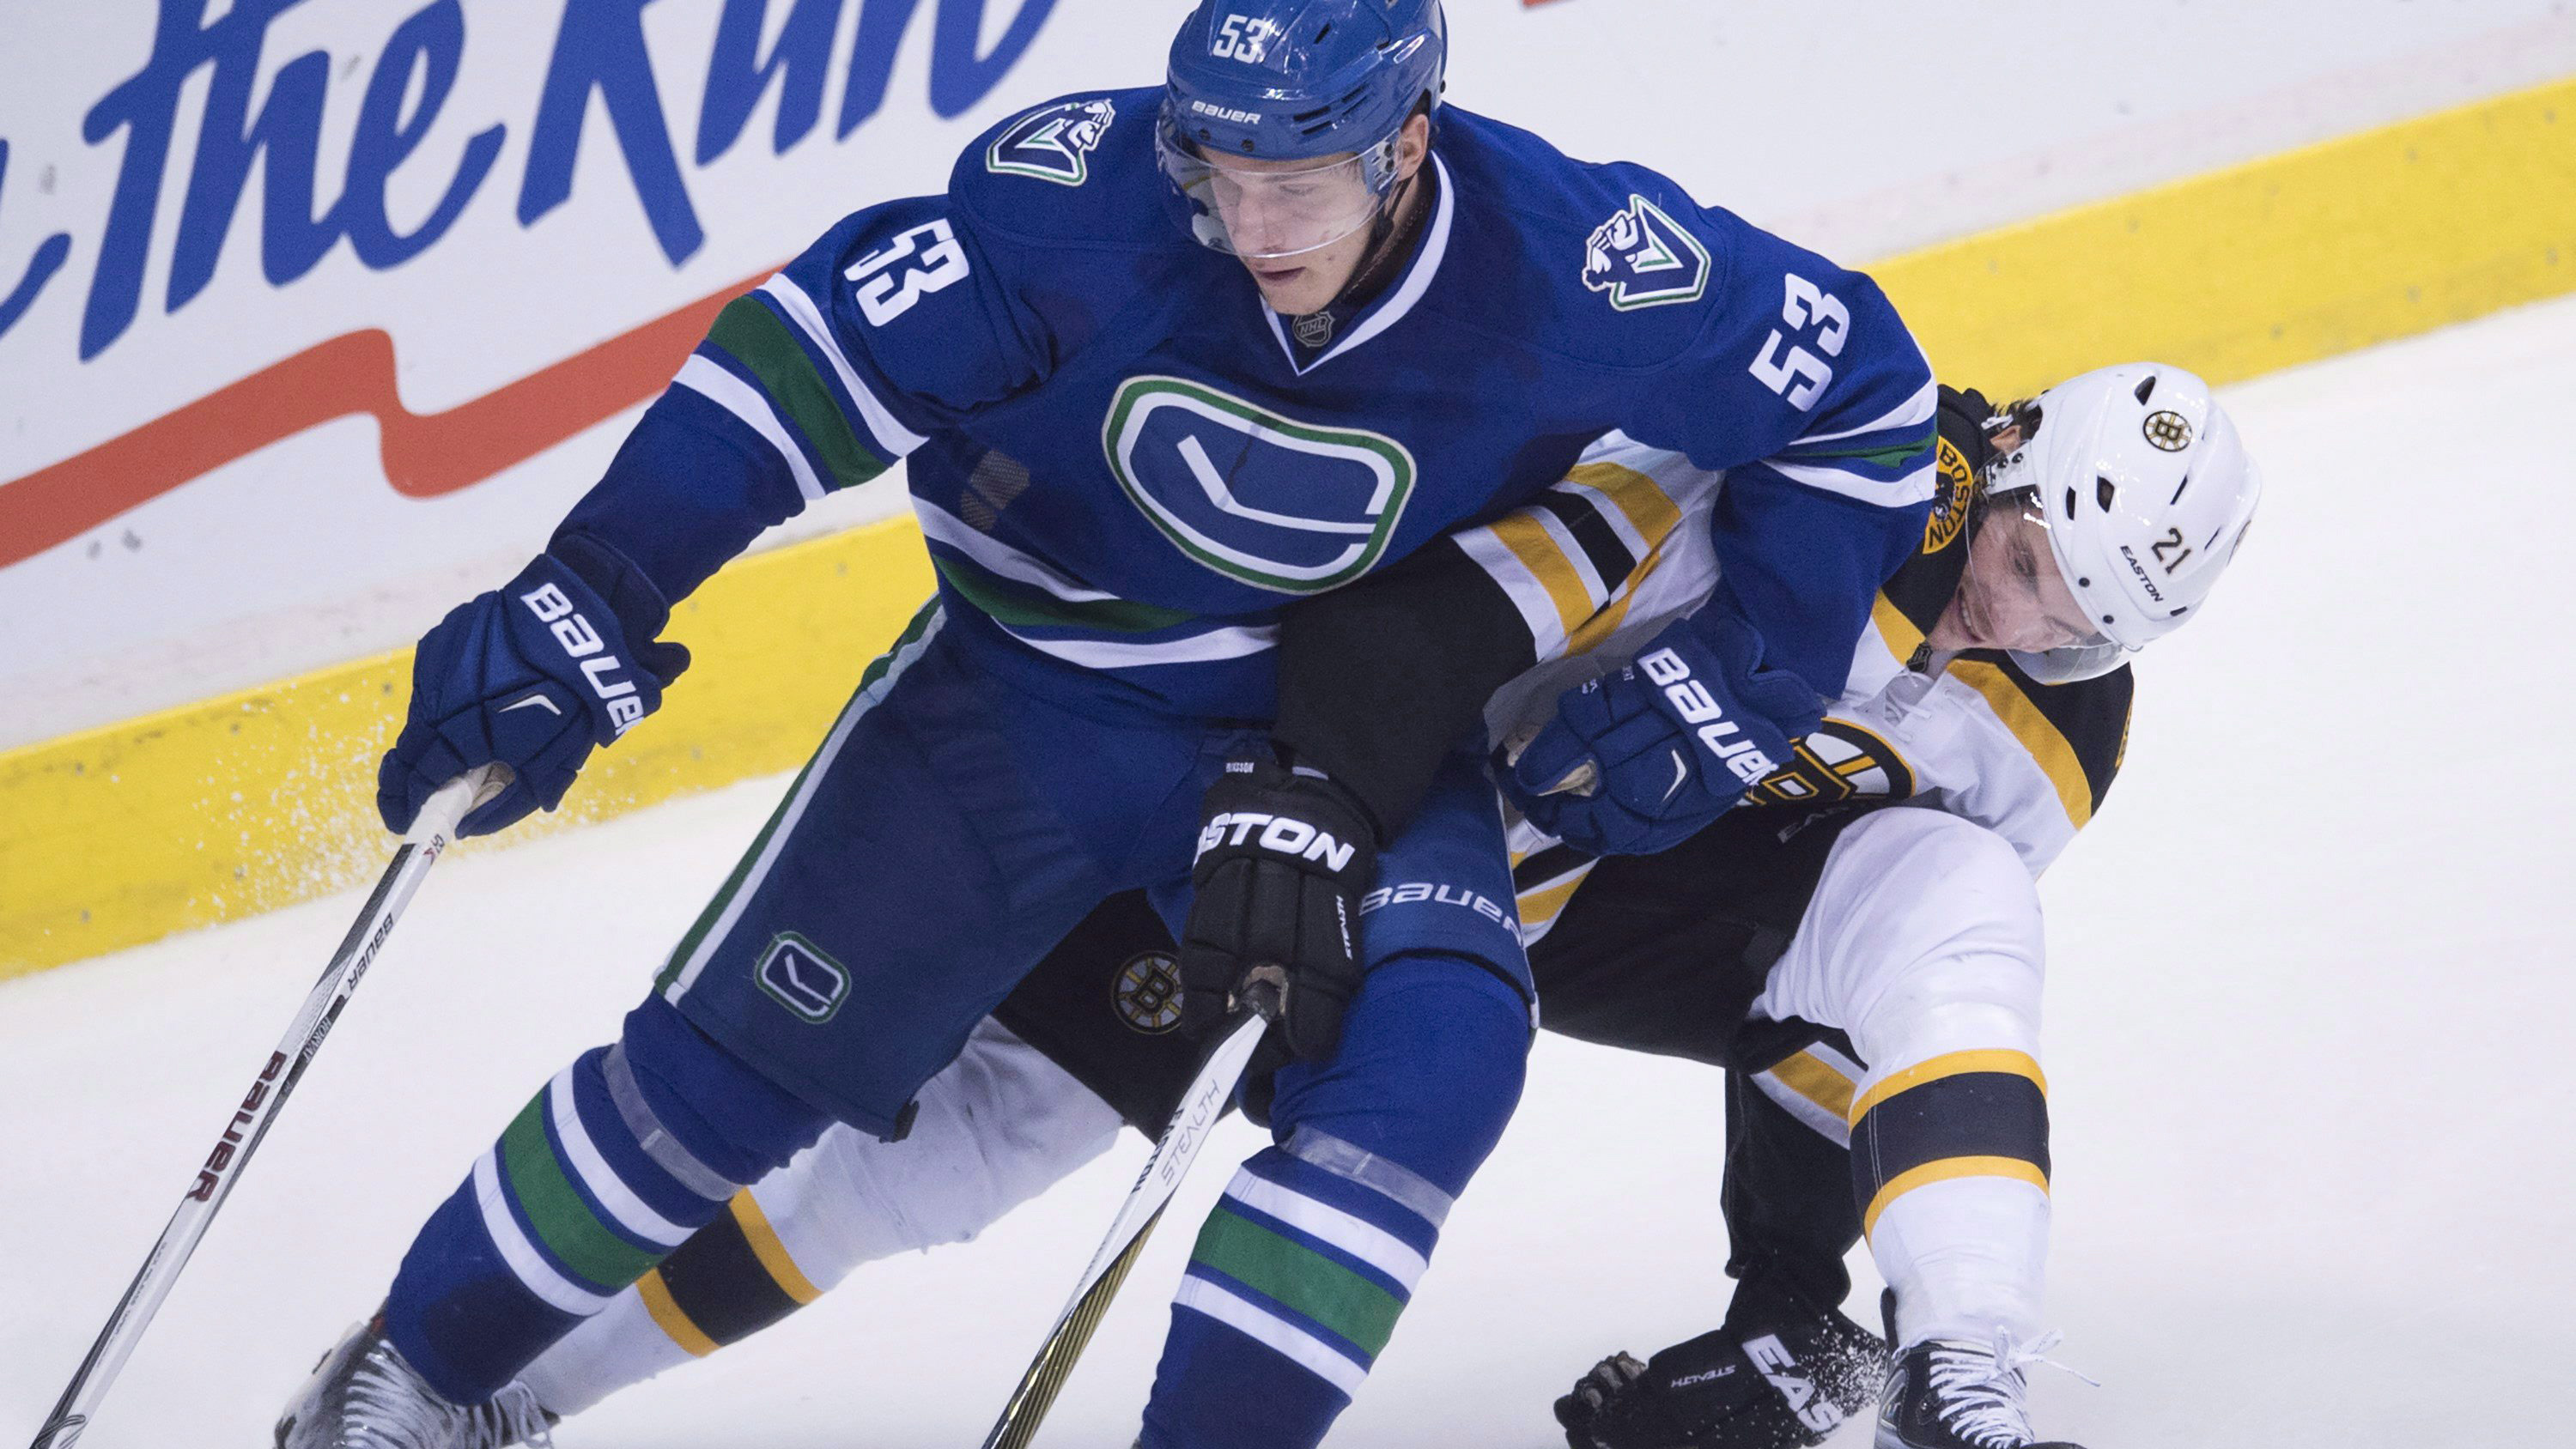 Vancouver Canucks centre Bo Horvat (53) fights for control of the puck with Boston Bruins left wing Loui Eriksson (21). (Jonathan Hayward/CP)